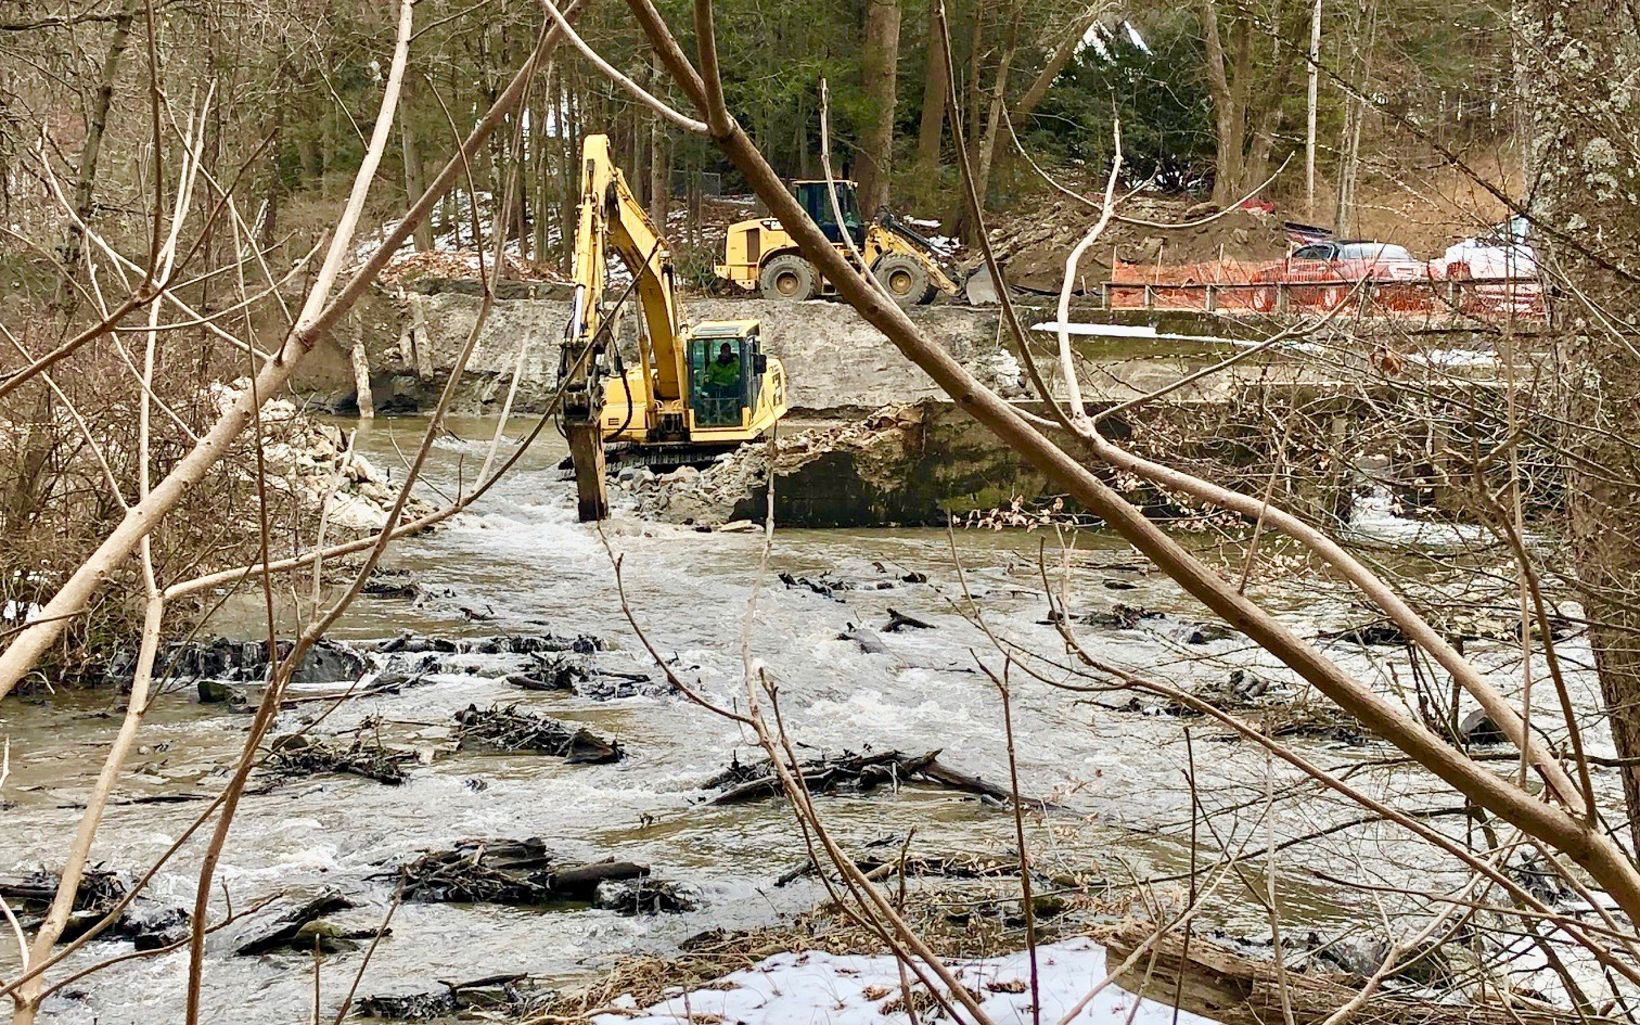 Looking upstream at progress being made on the removal of the Old Papermill Dam.